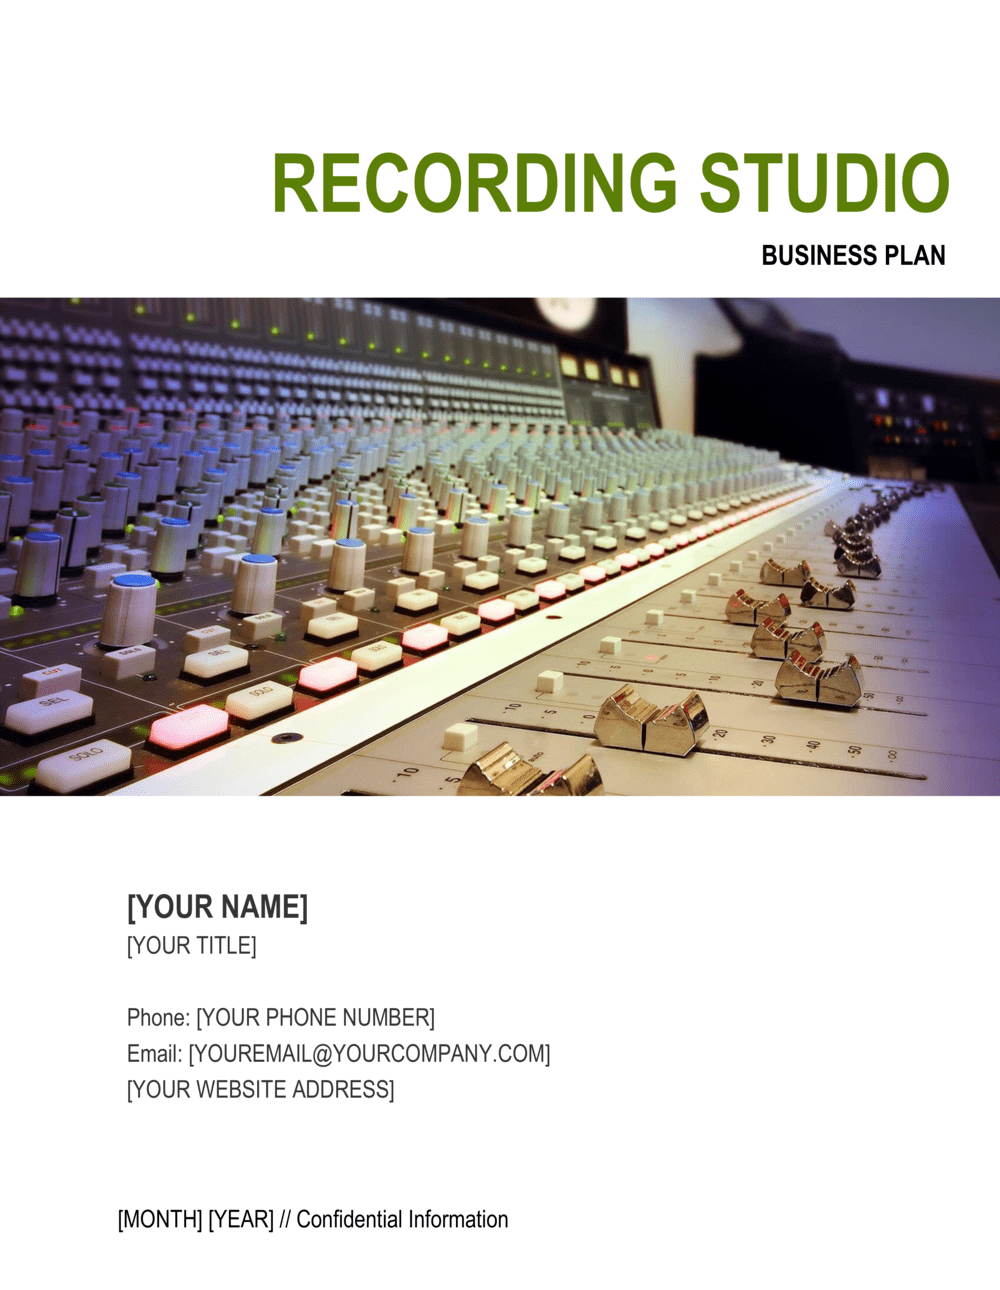 Business-in-a-Box's Recording Studio Business Plan Template